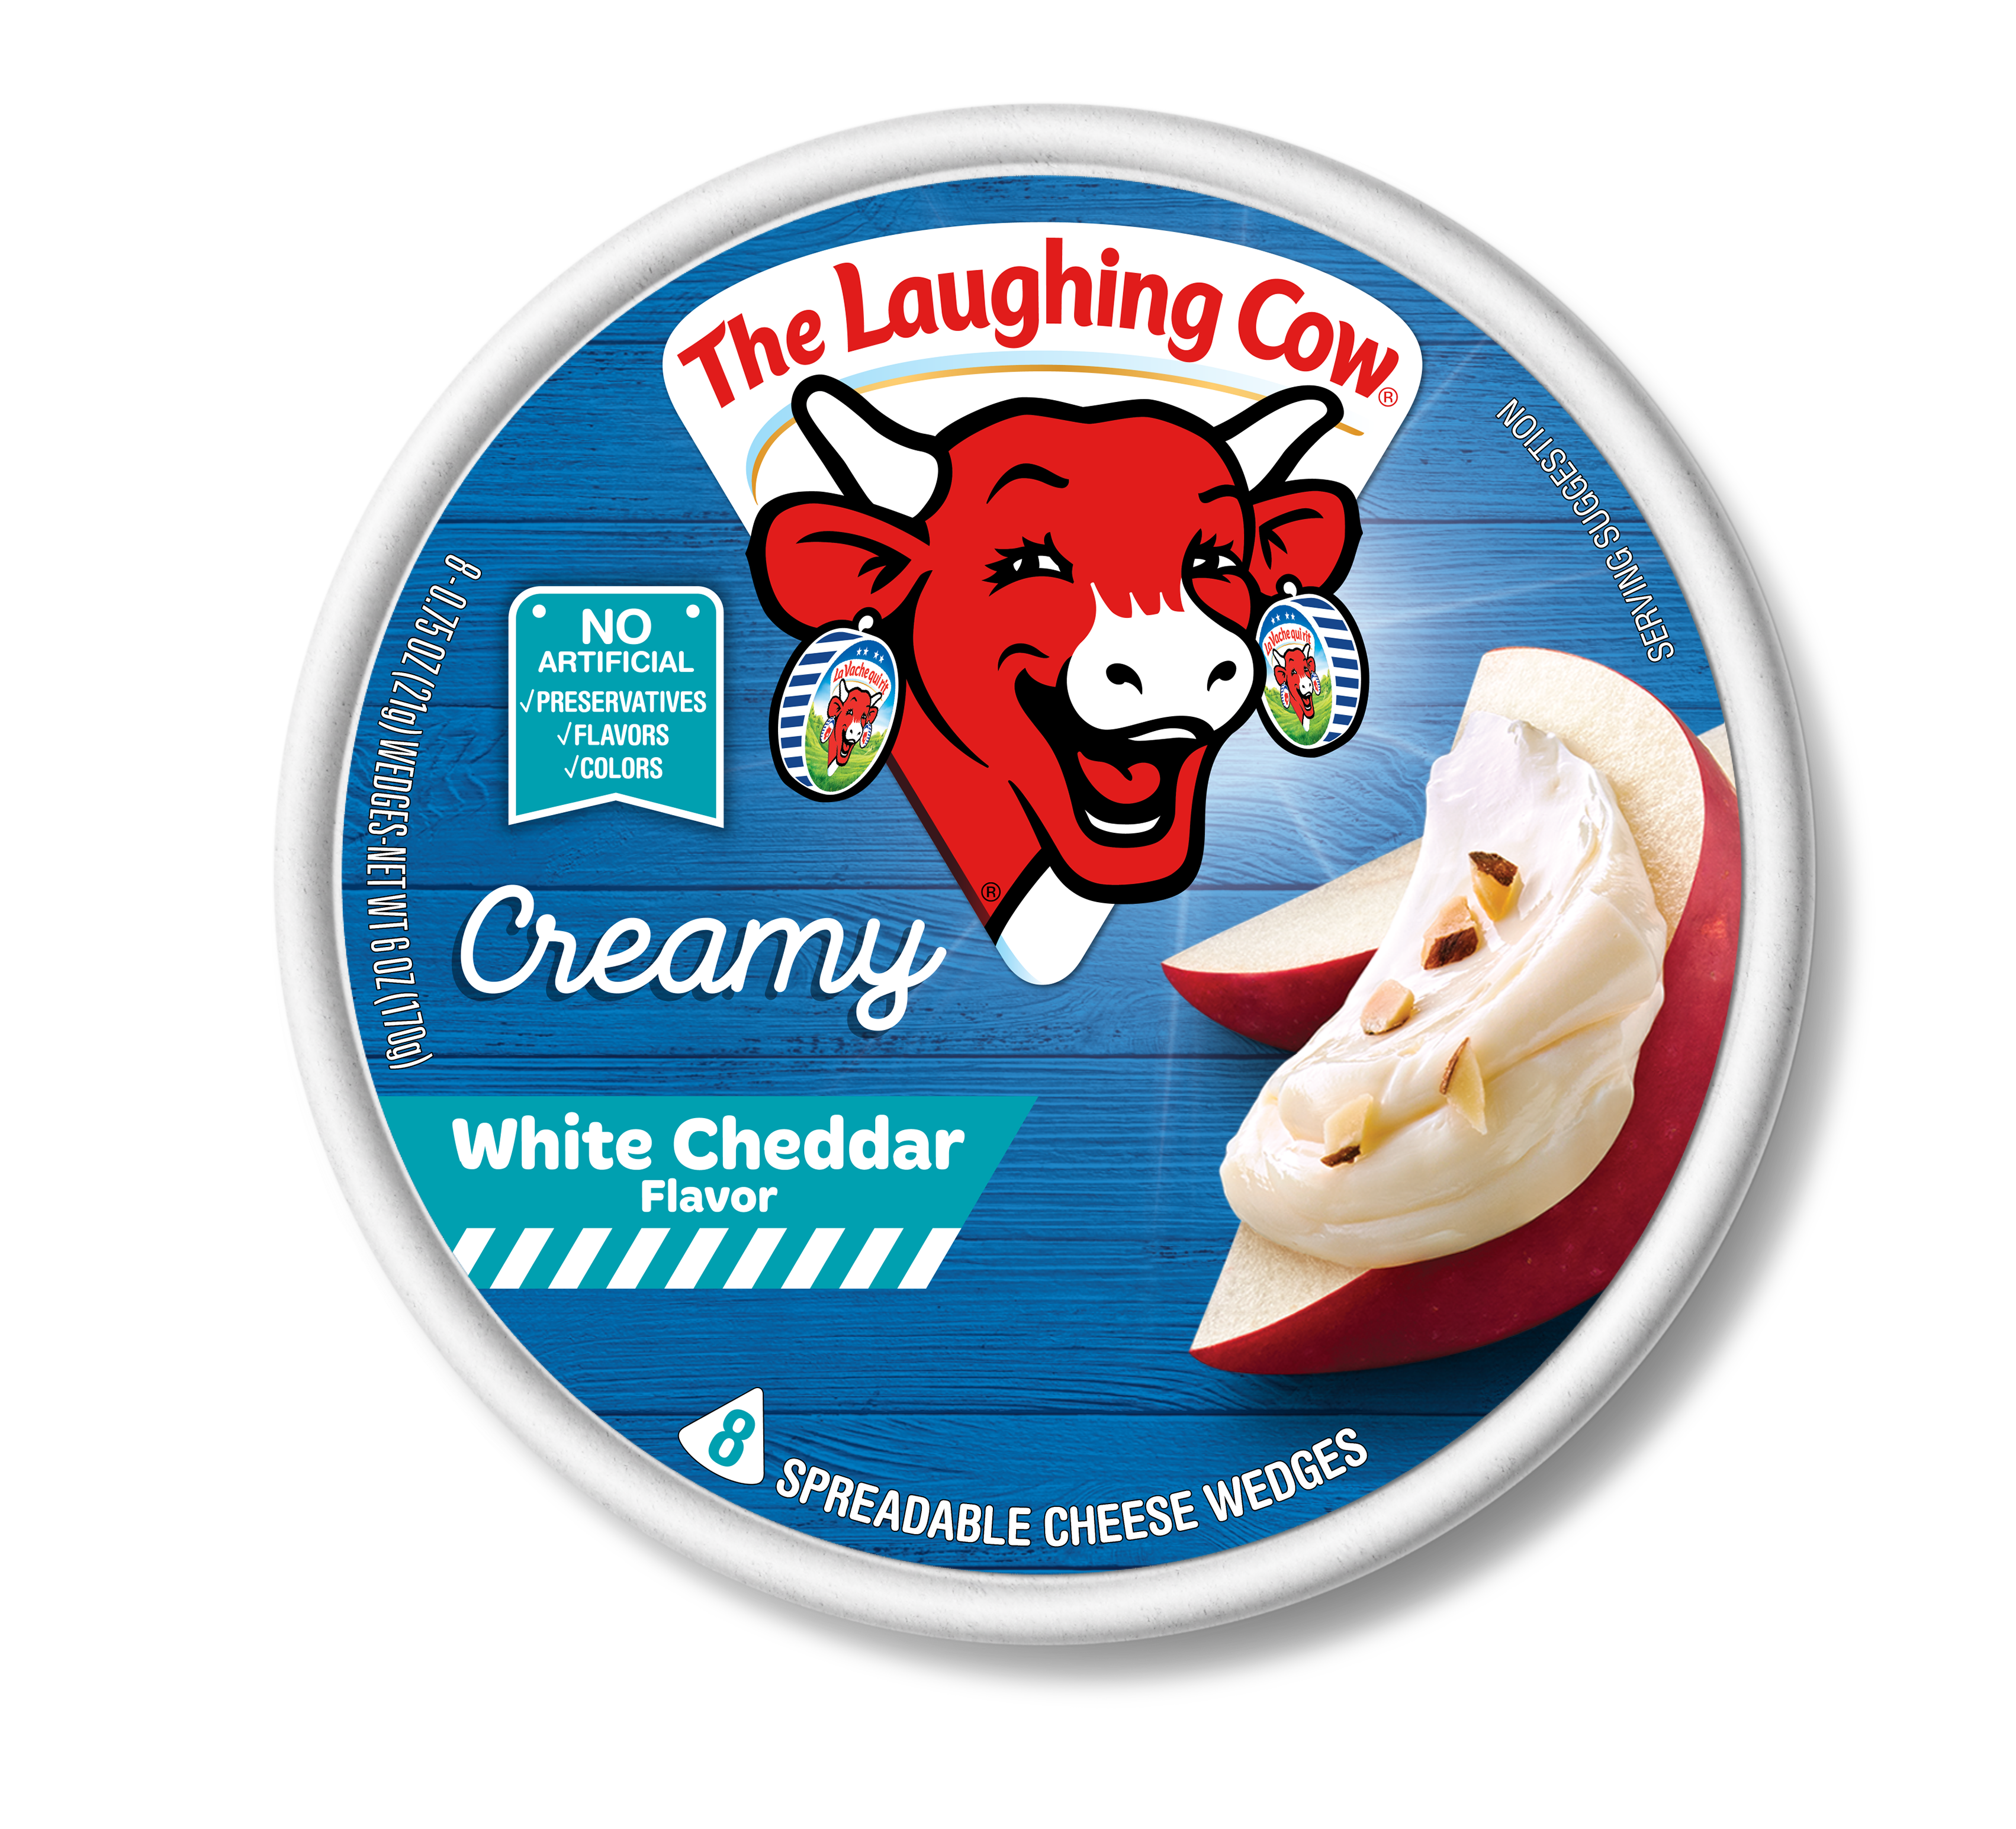 The Laughing Cow Light White Cheddar Spreadable Cheese Wedges, 0.75 oz, 8 ct